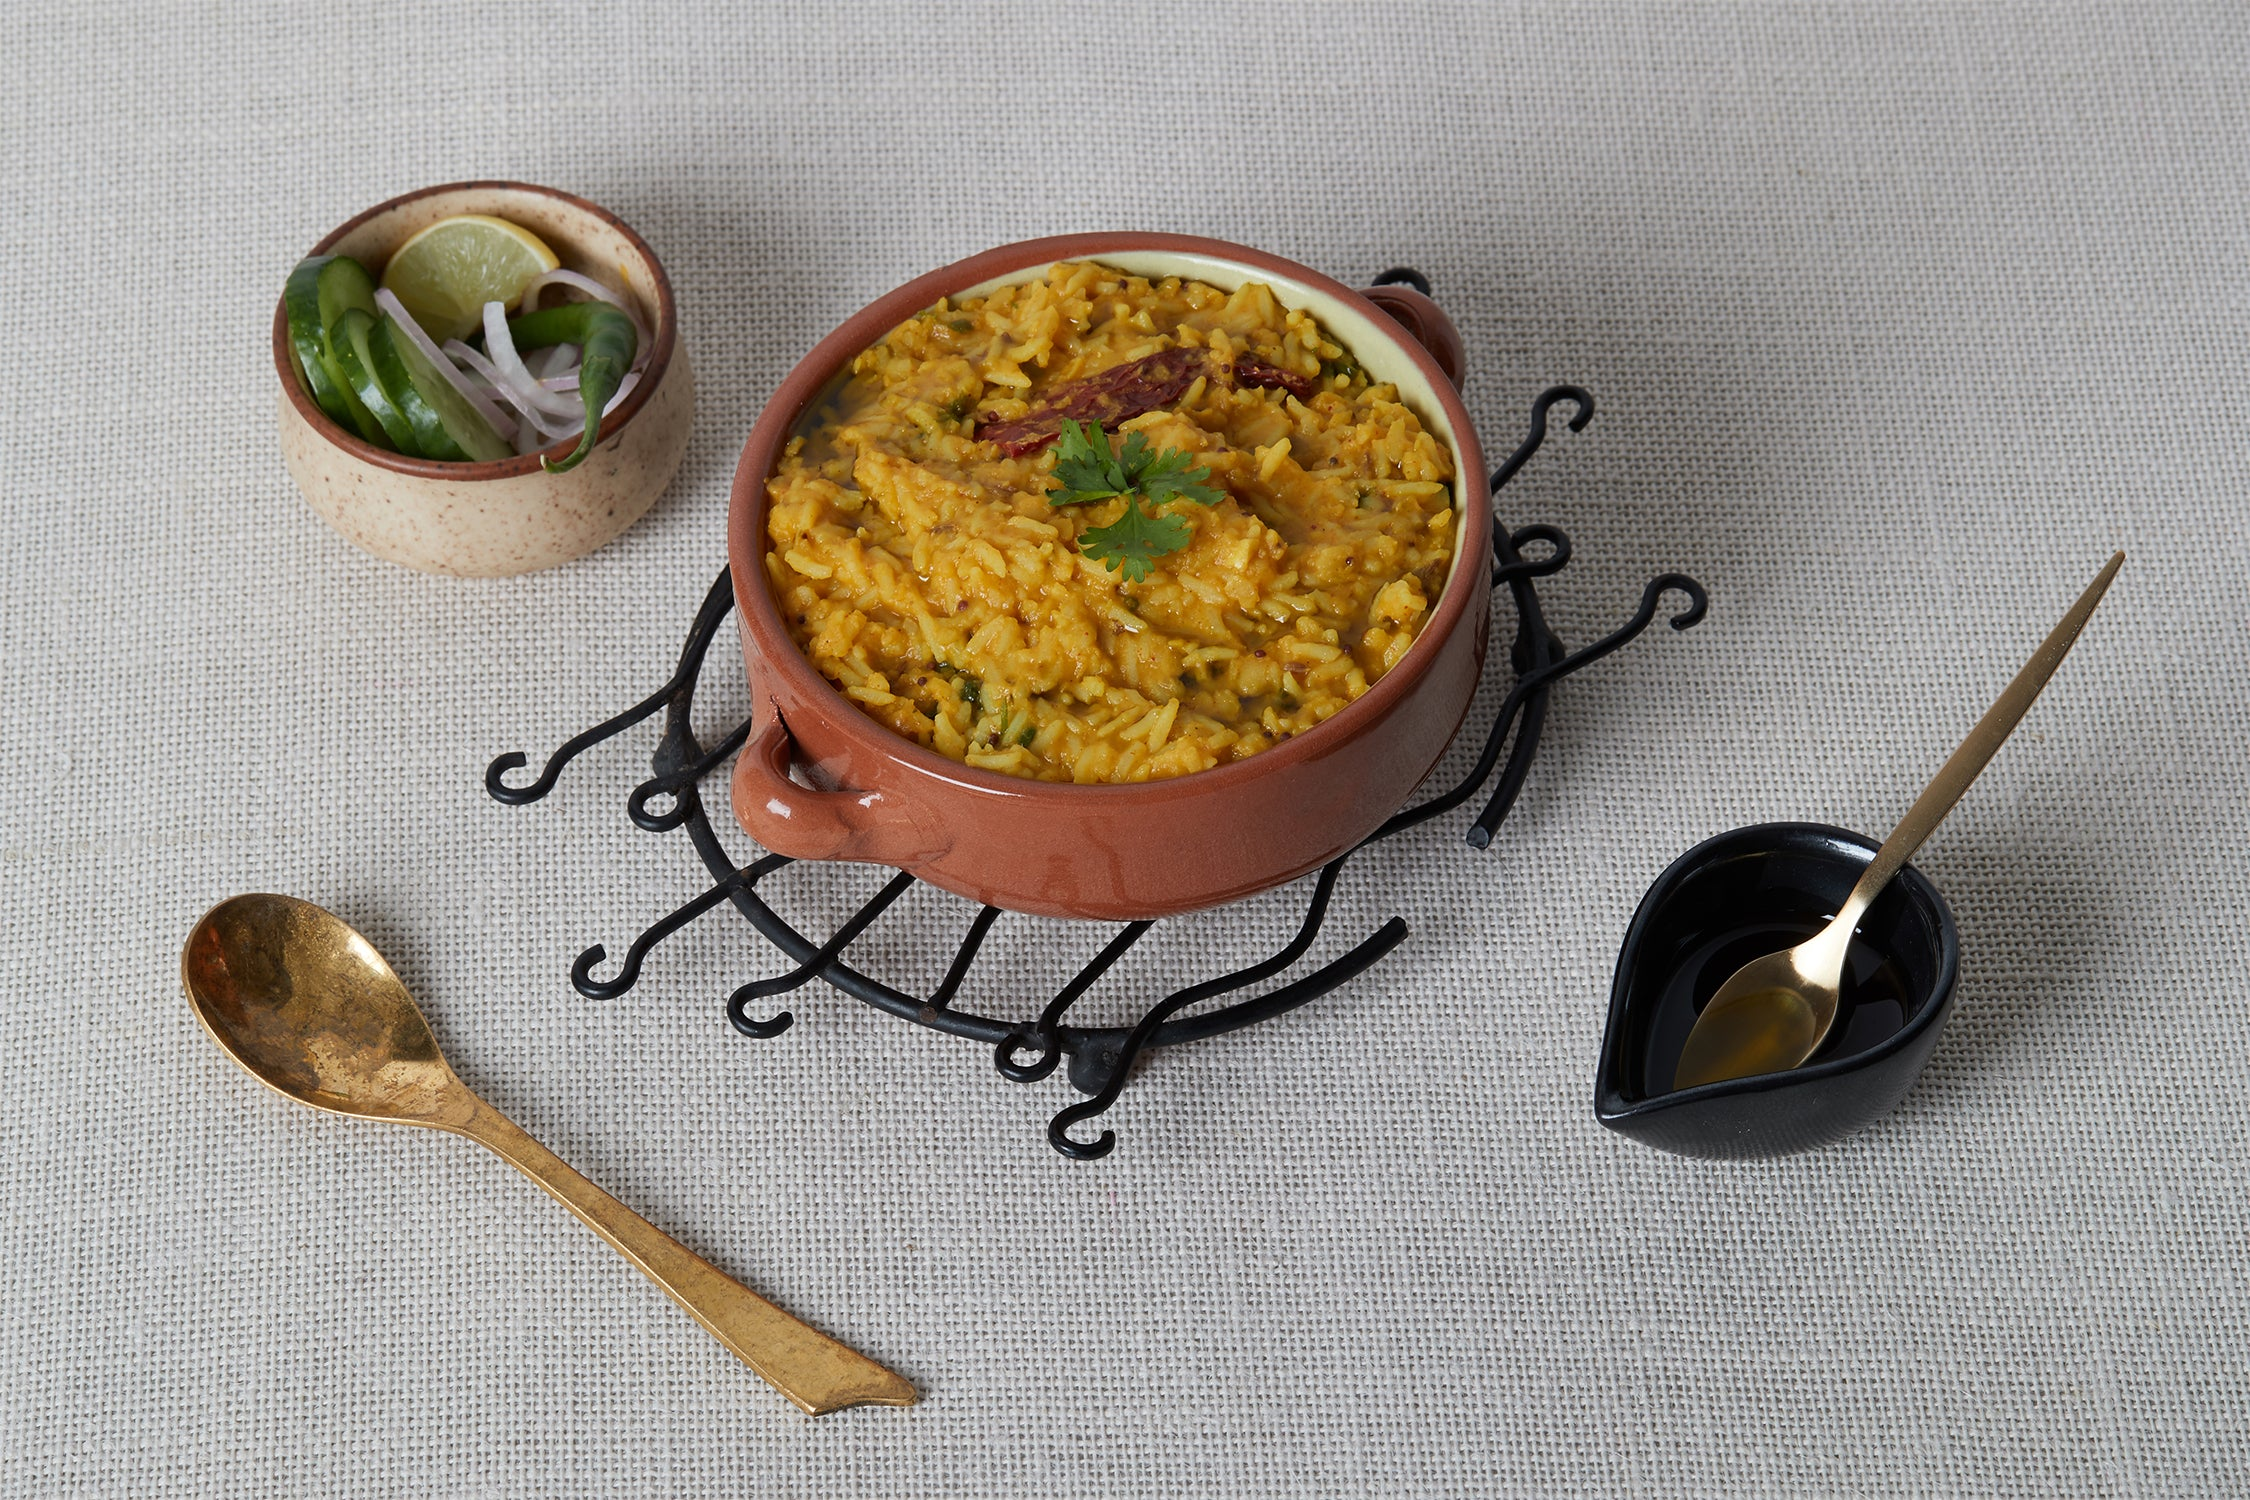 Hemp Seed Oil drizzled over Khichdi